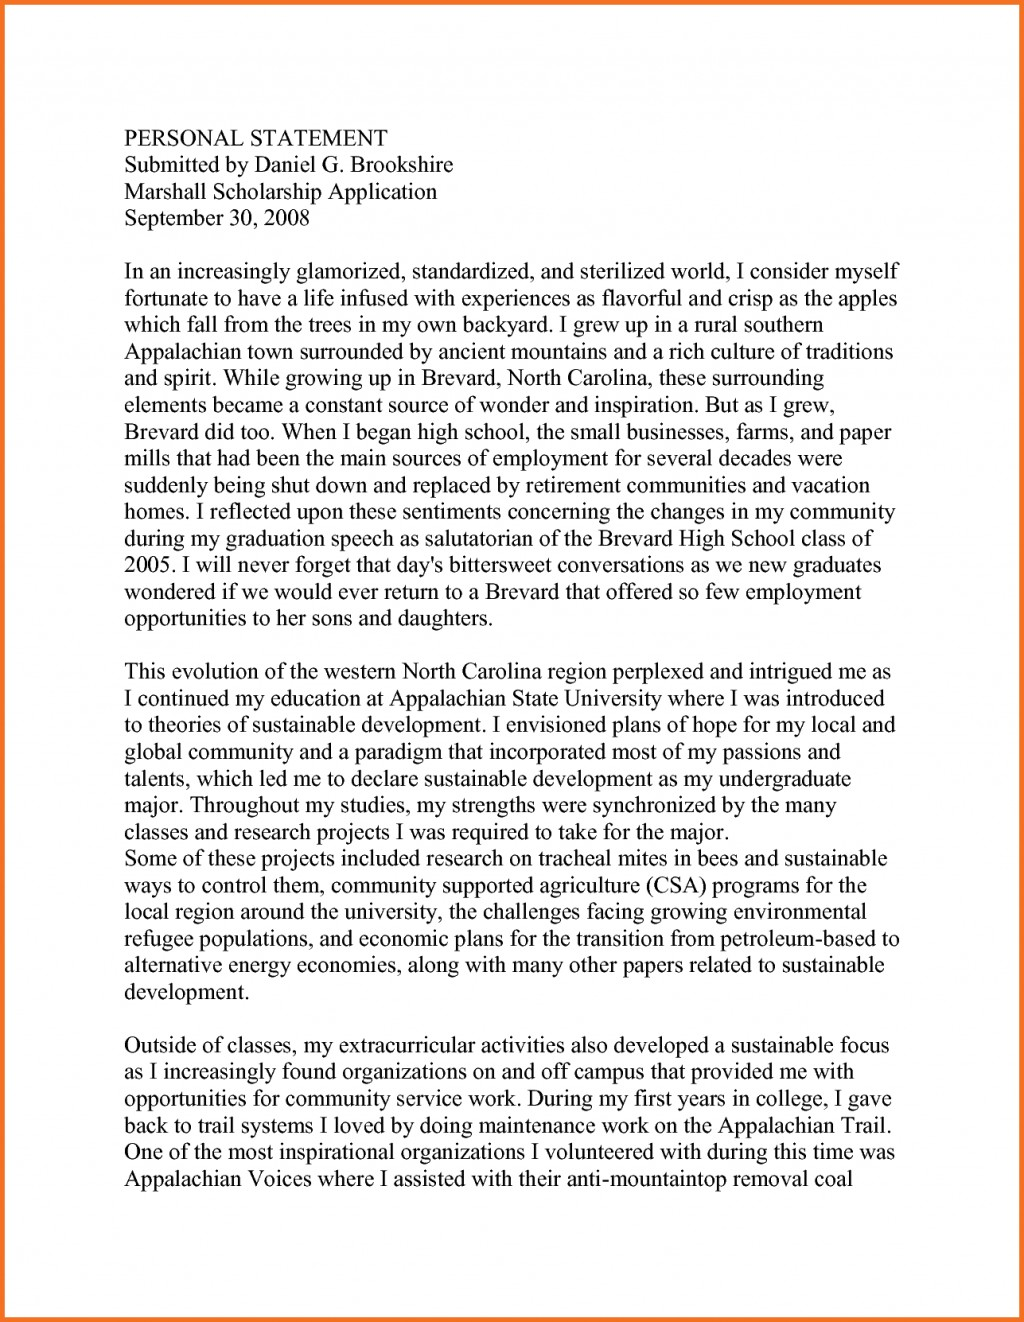 006 Scholarship Application Essay Samples Artresume Sample Personal Statement Mba Template Nsvwiupr Engineering Nursing Example Staggering Tips College Ideas Large